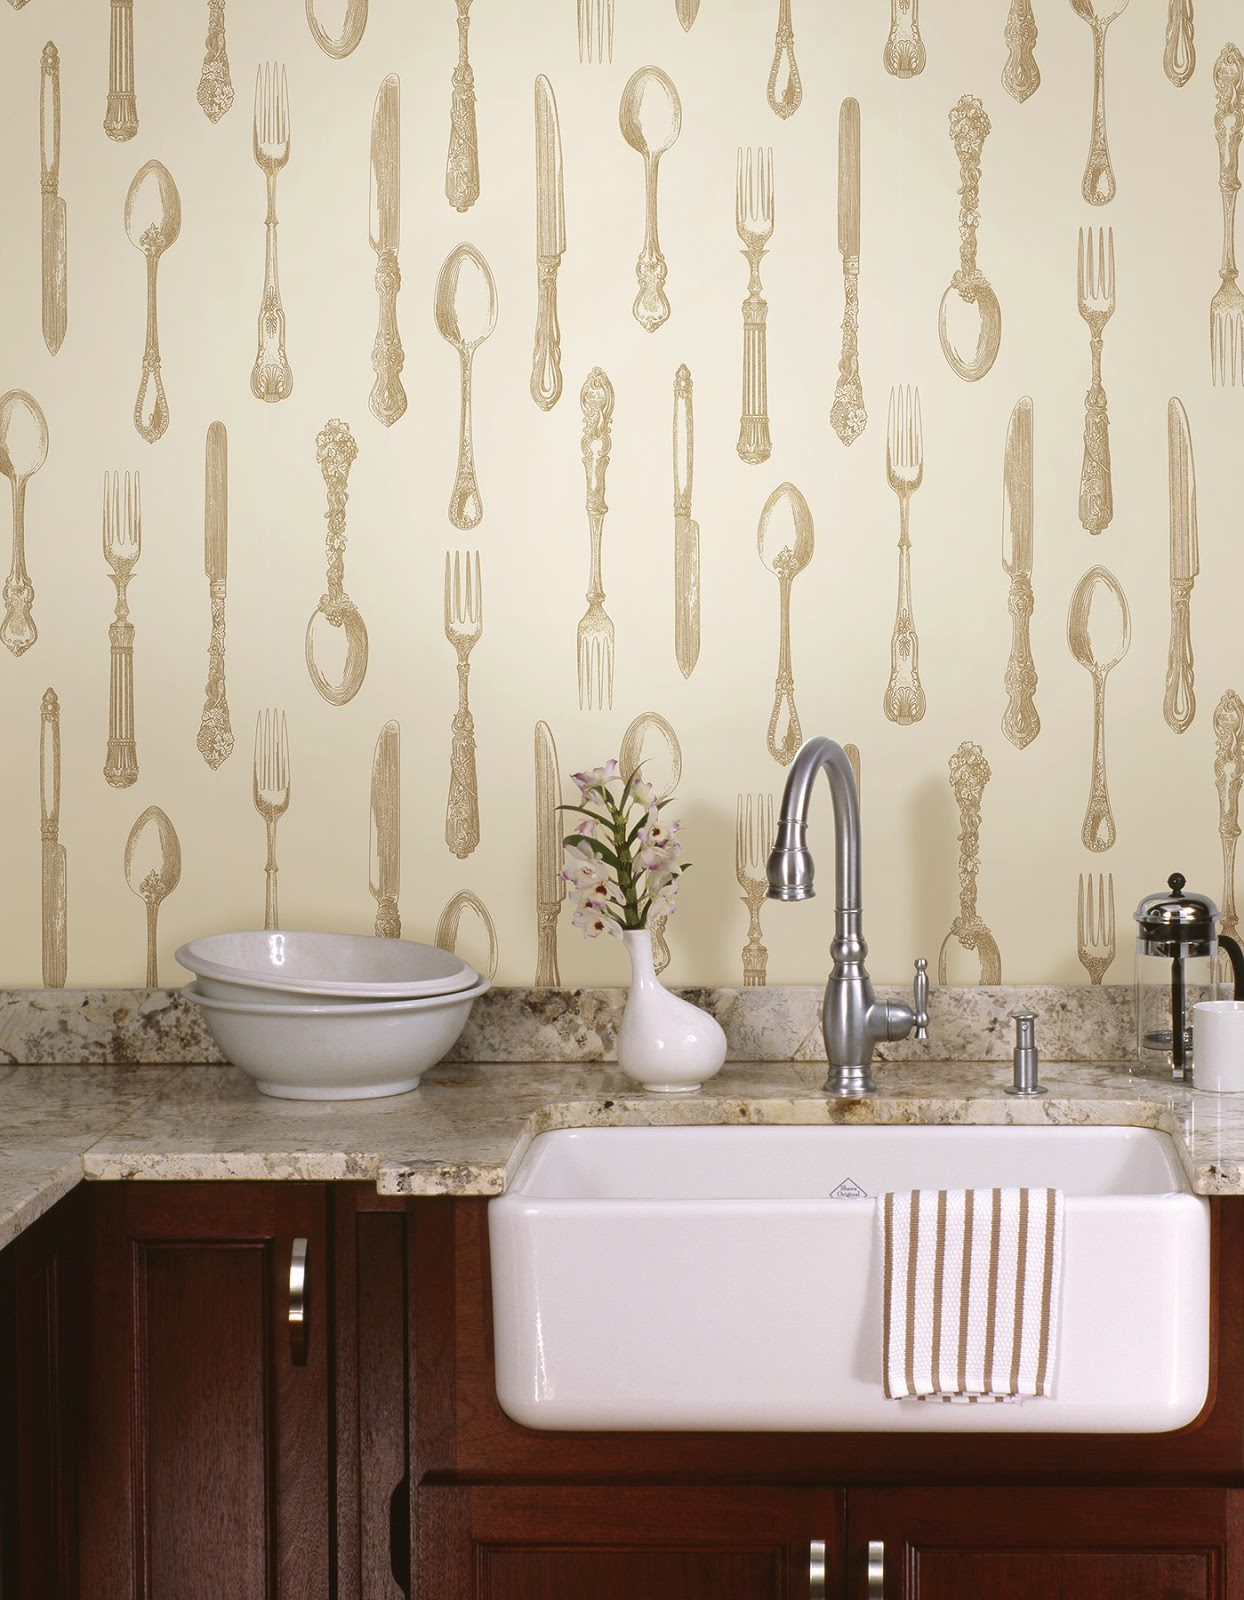 https://www.wallcoveringsforless.com/shoppingcart/prodlist1.CFM?page=_prod_detail.cfm&product_id=42772&startrow=13&search=347-&pagereturn=_search.cfm